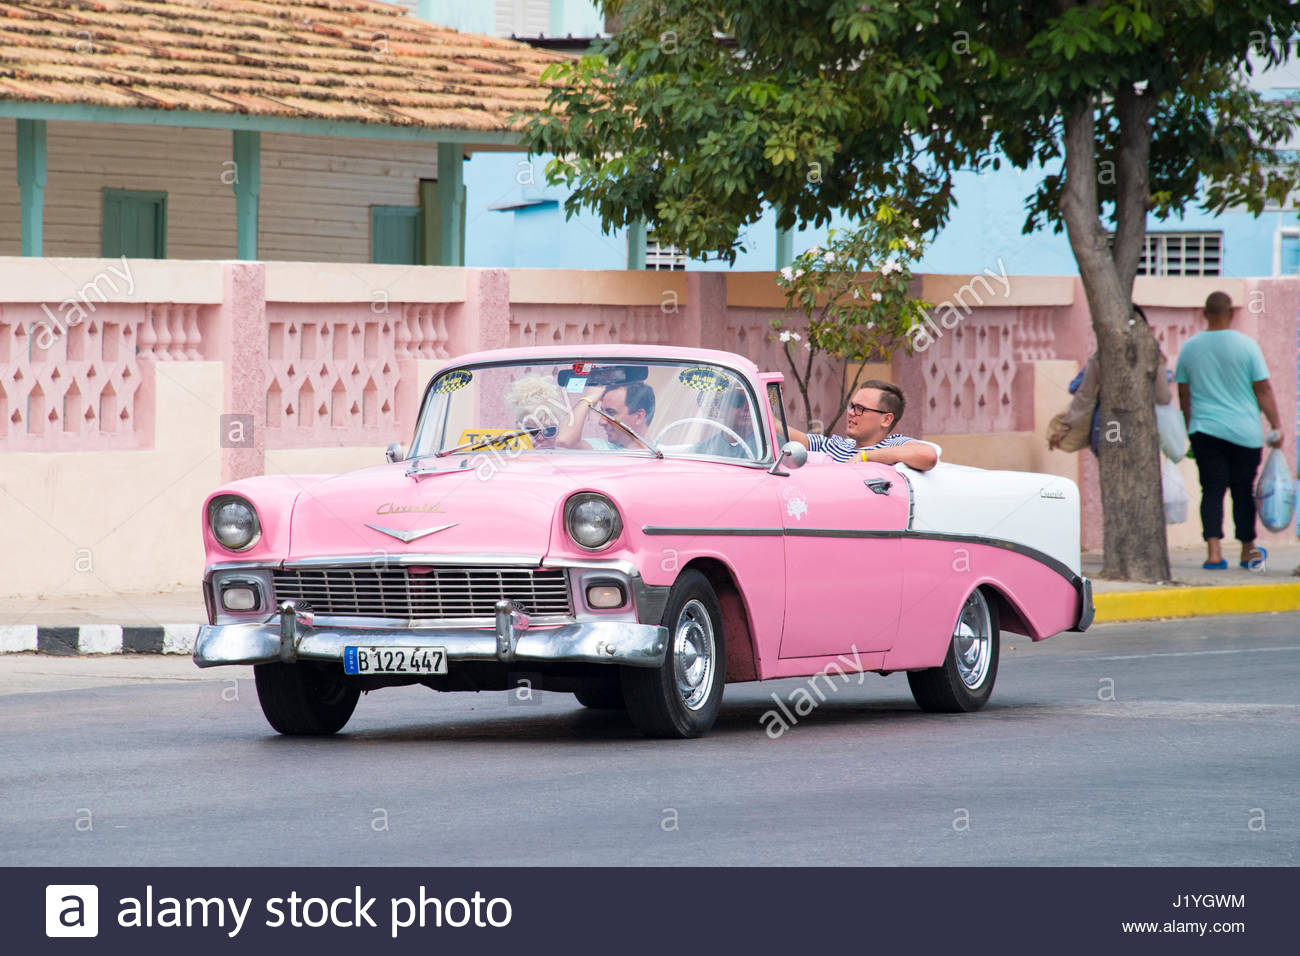 Chevrolet 1957 convertible old American vintage cars driving in ...